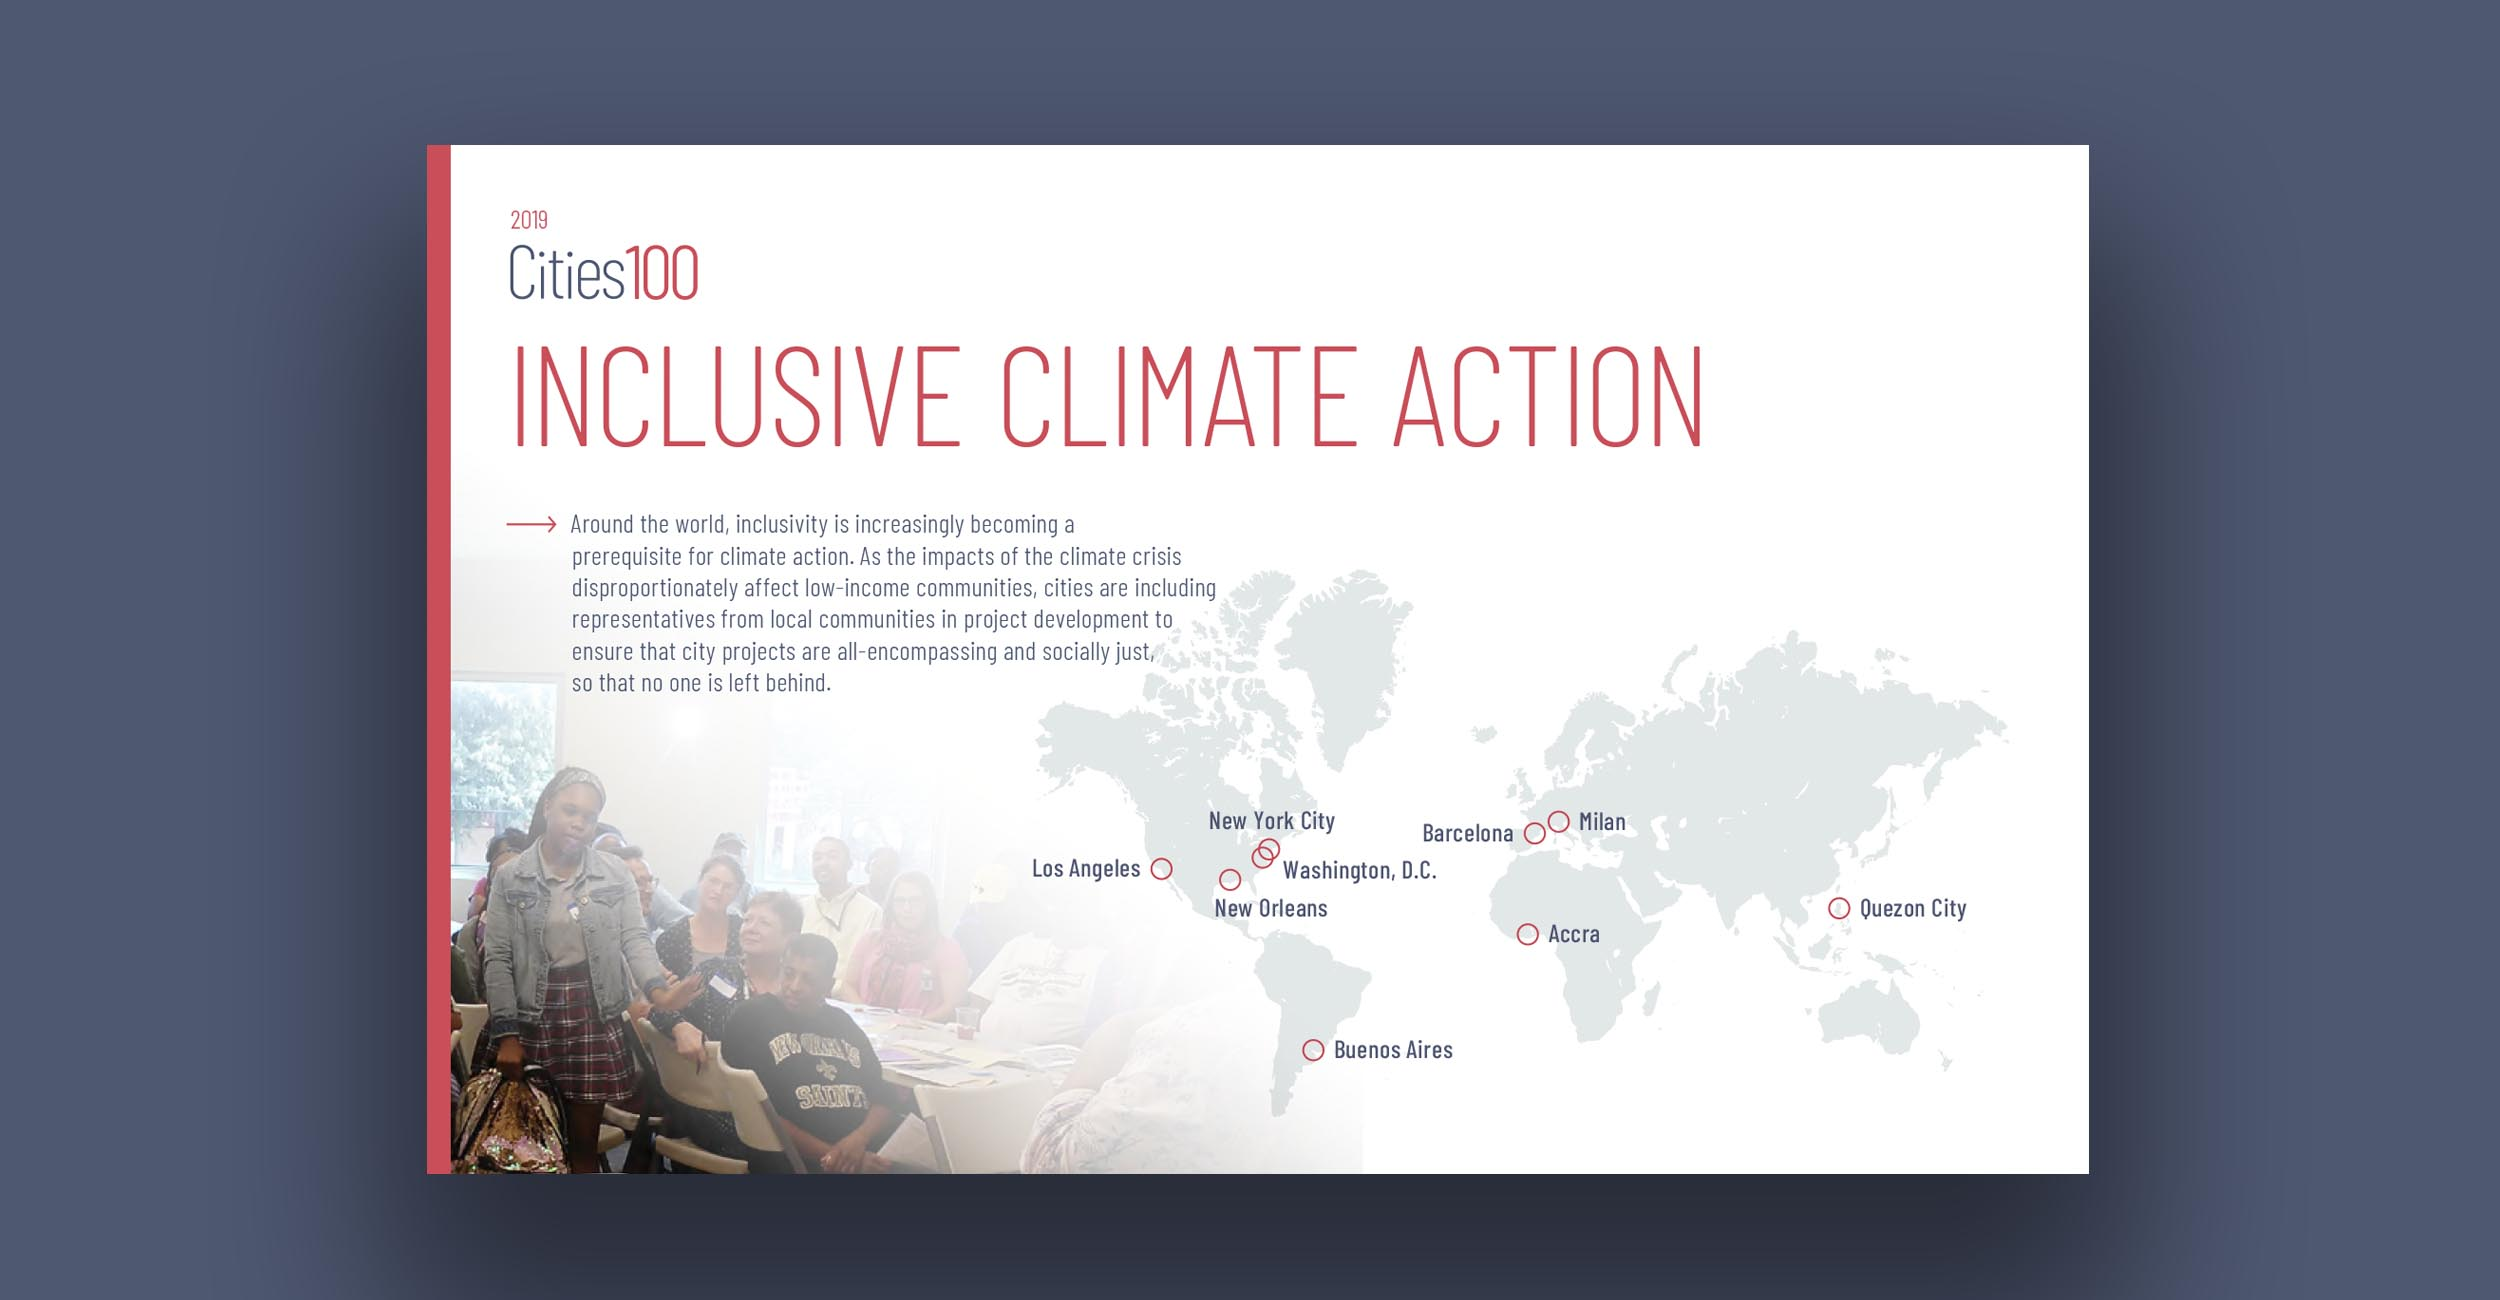 Inclusive Climate Action - Around the world, inclusivity is increasingly becoming a prerequisite for climate action. As the impacts of the climate crisis disproportionately affect low-income communities, cities are including representatives from local communities in project development to ensure that city projects are all-encompassing and socially just, so that no one is left behind.